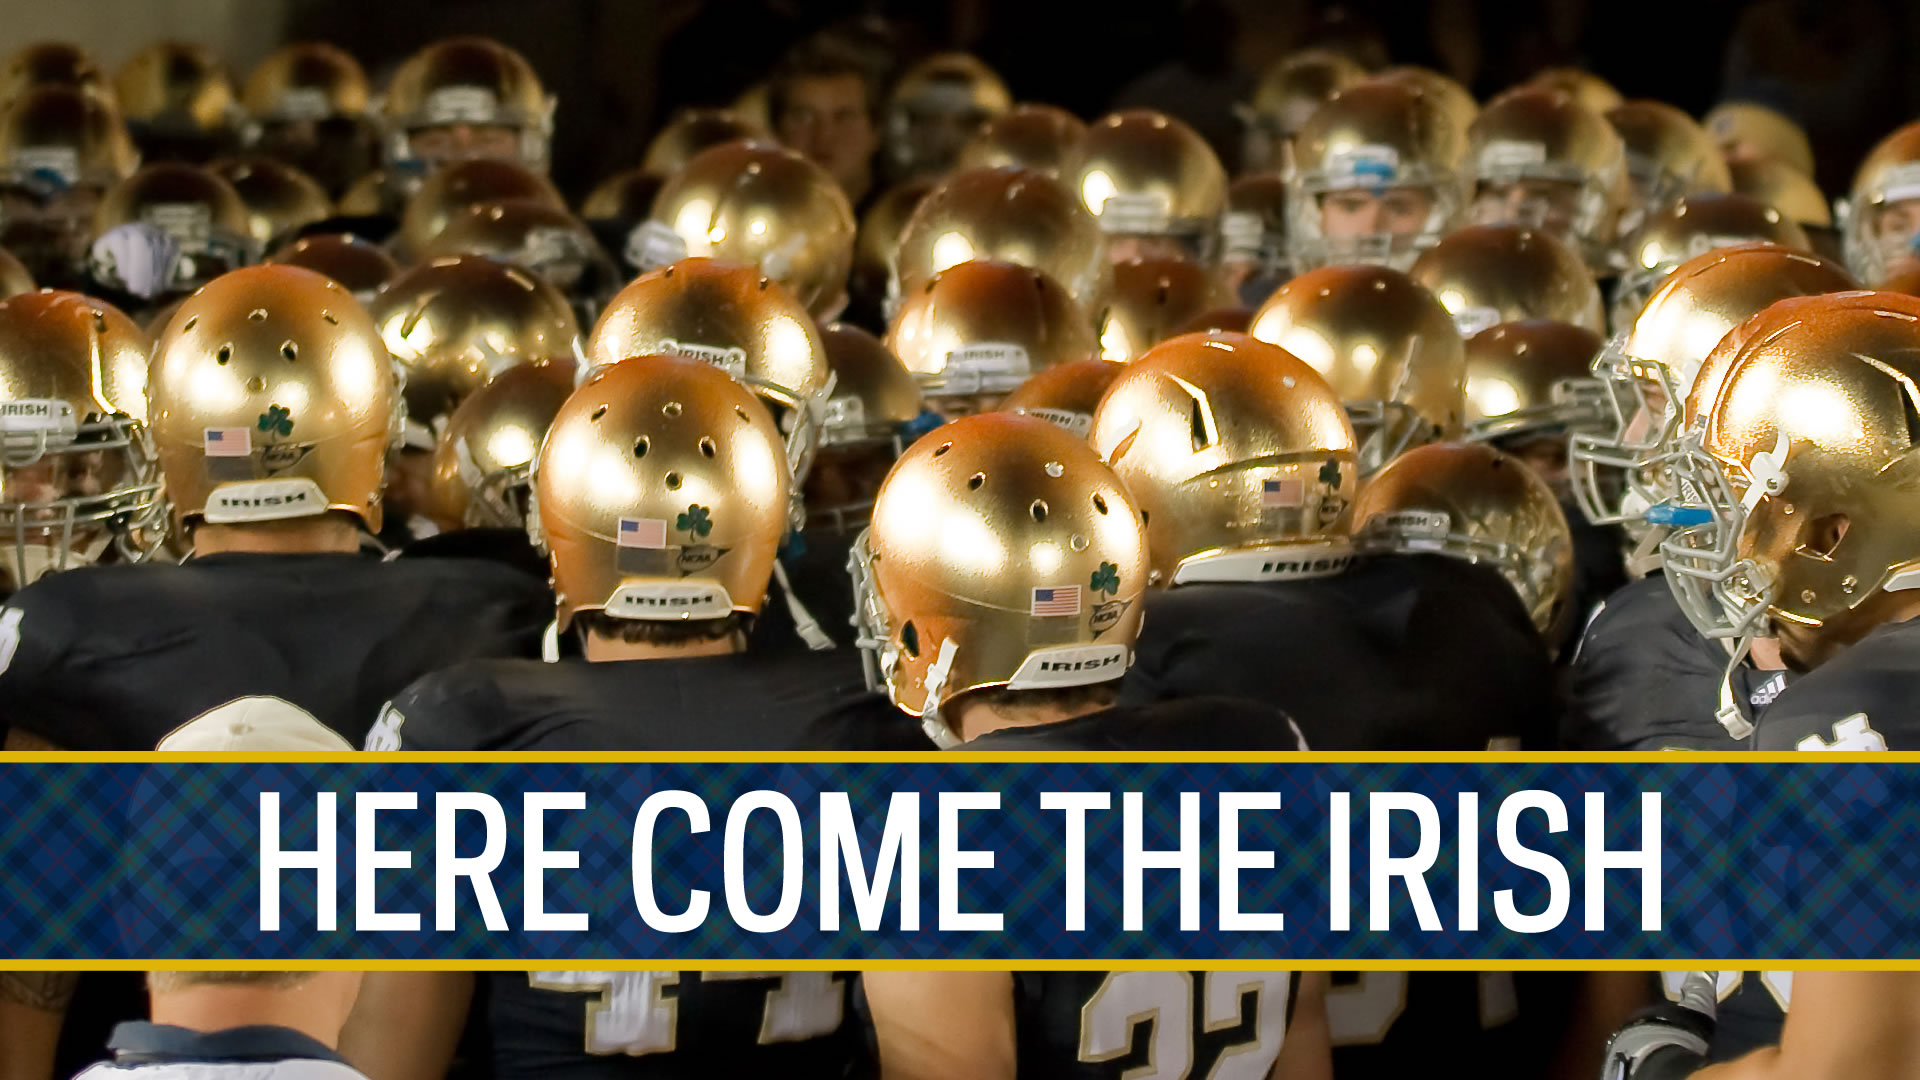 notre dame fighting irish Hd Wallpapers 1920x1080